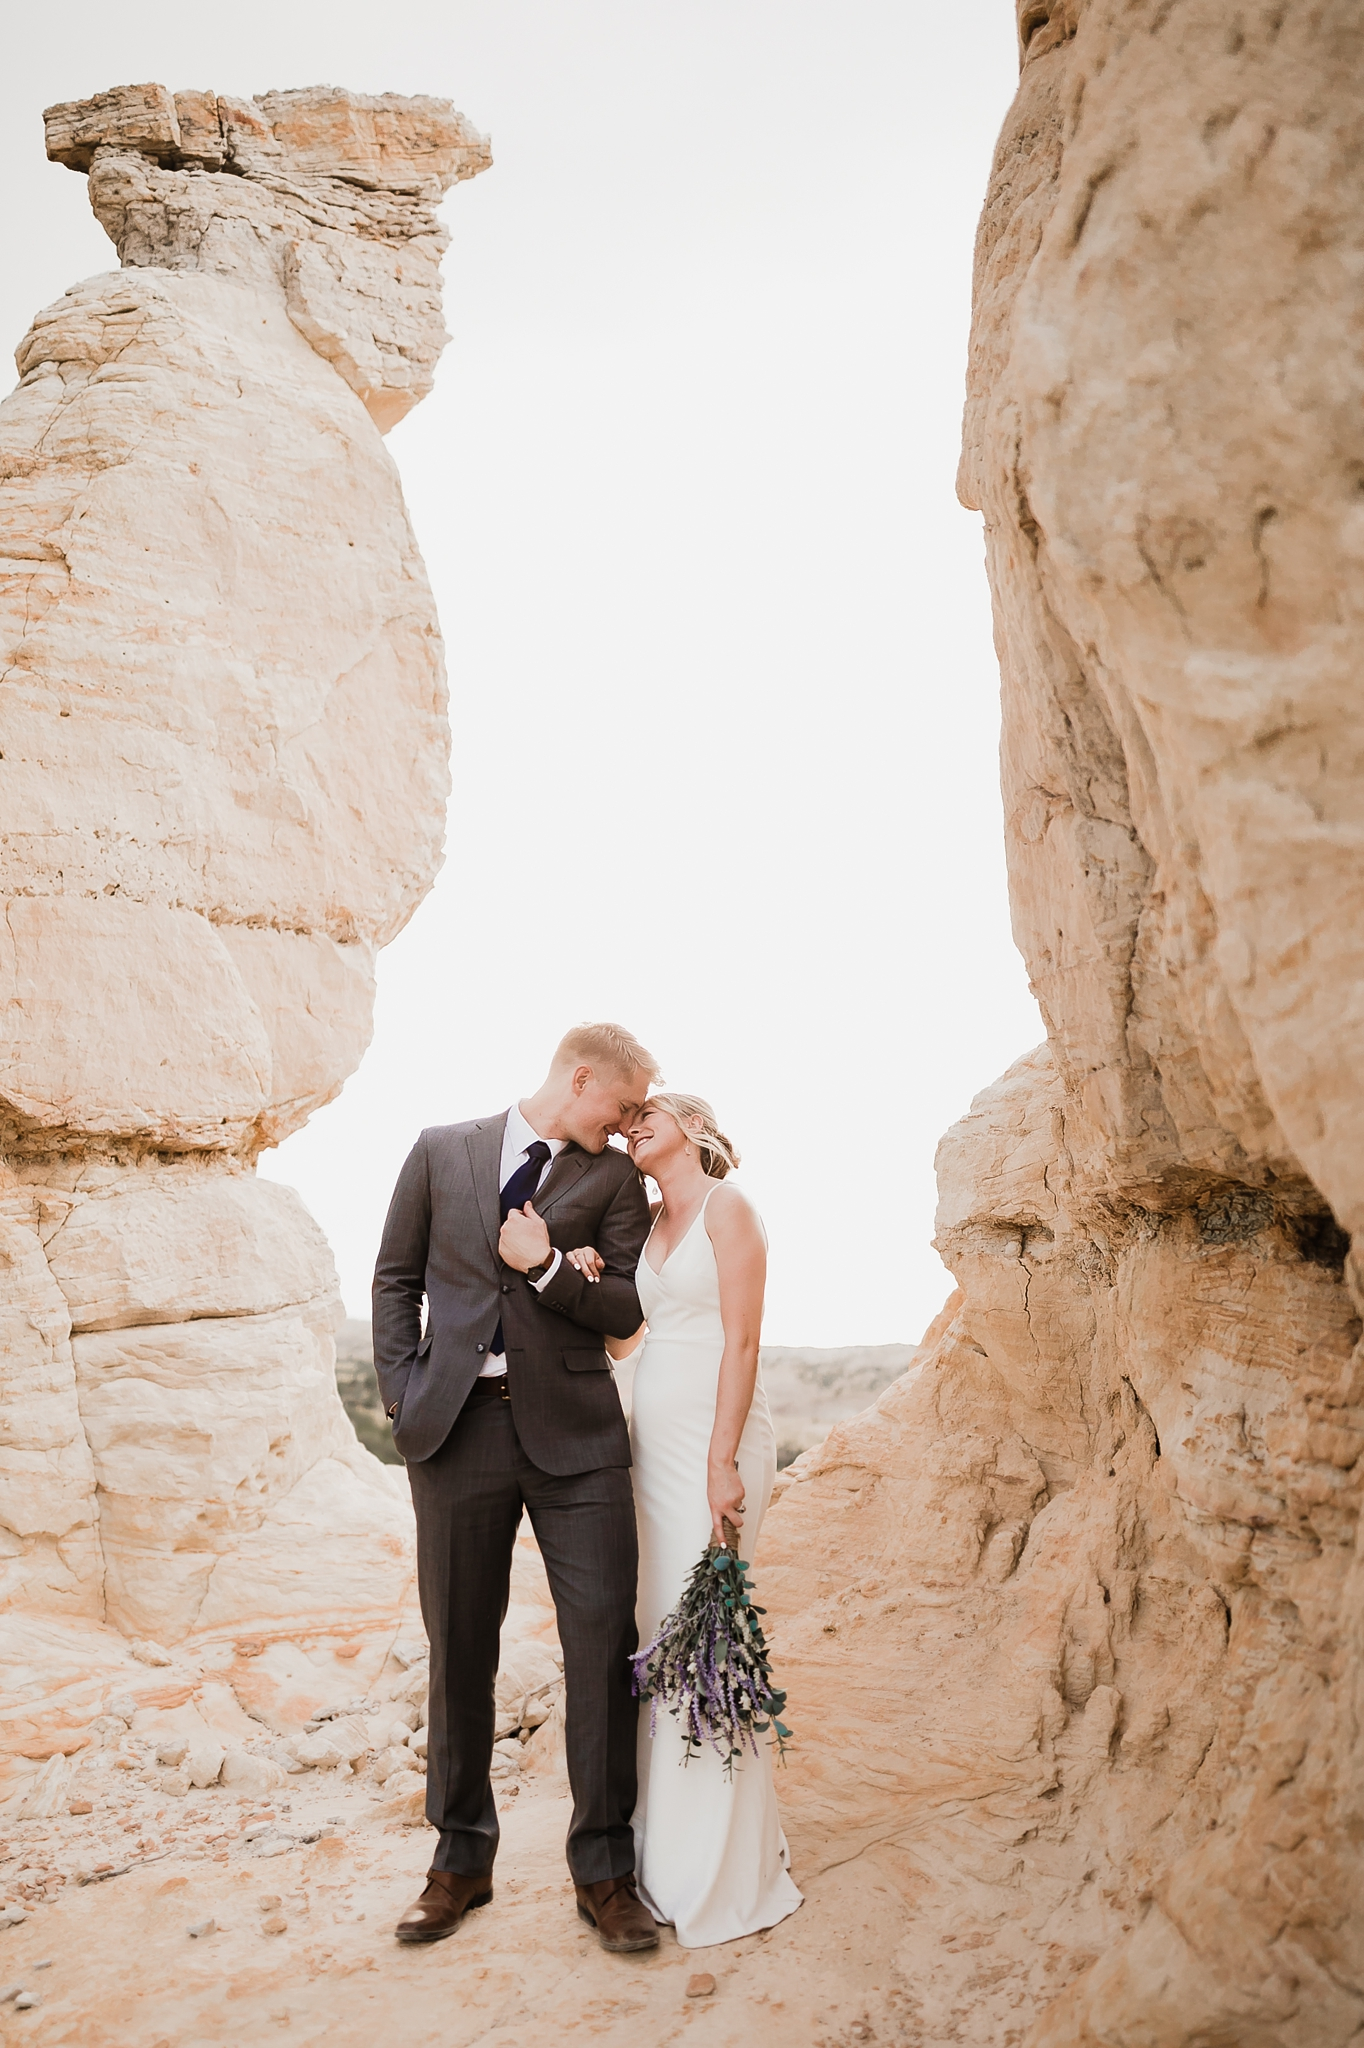 Alicia+lucia+photography+-+albuquerque+wedding+photographer+-+santa+fe+wedding+photography+-+new+mexico+wedding+photographer+-+new+mexico+wedding+-+new+mexico+elopement+-+elopment+-+mountain+elopement_0021.jpg